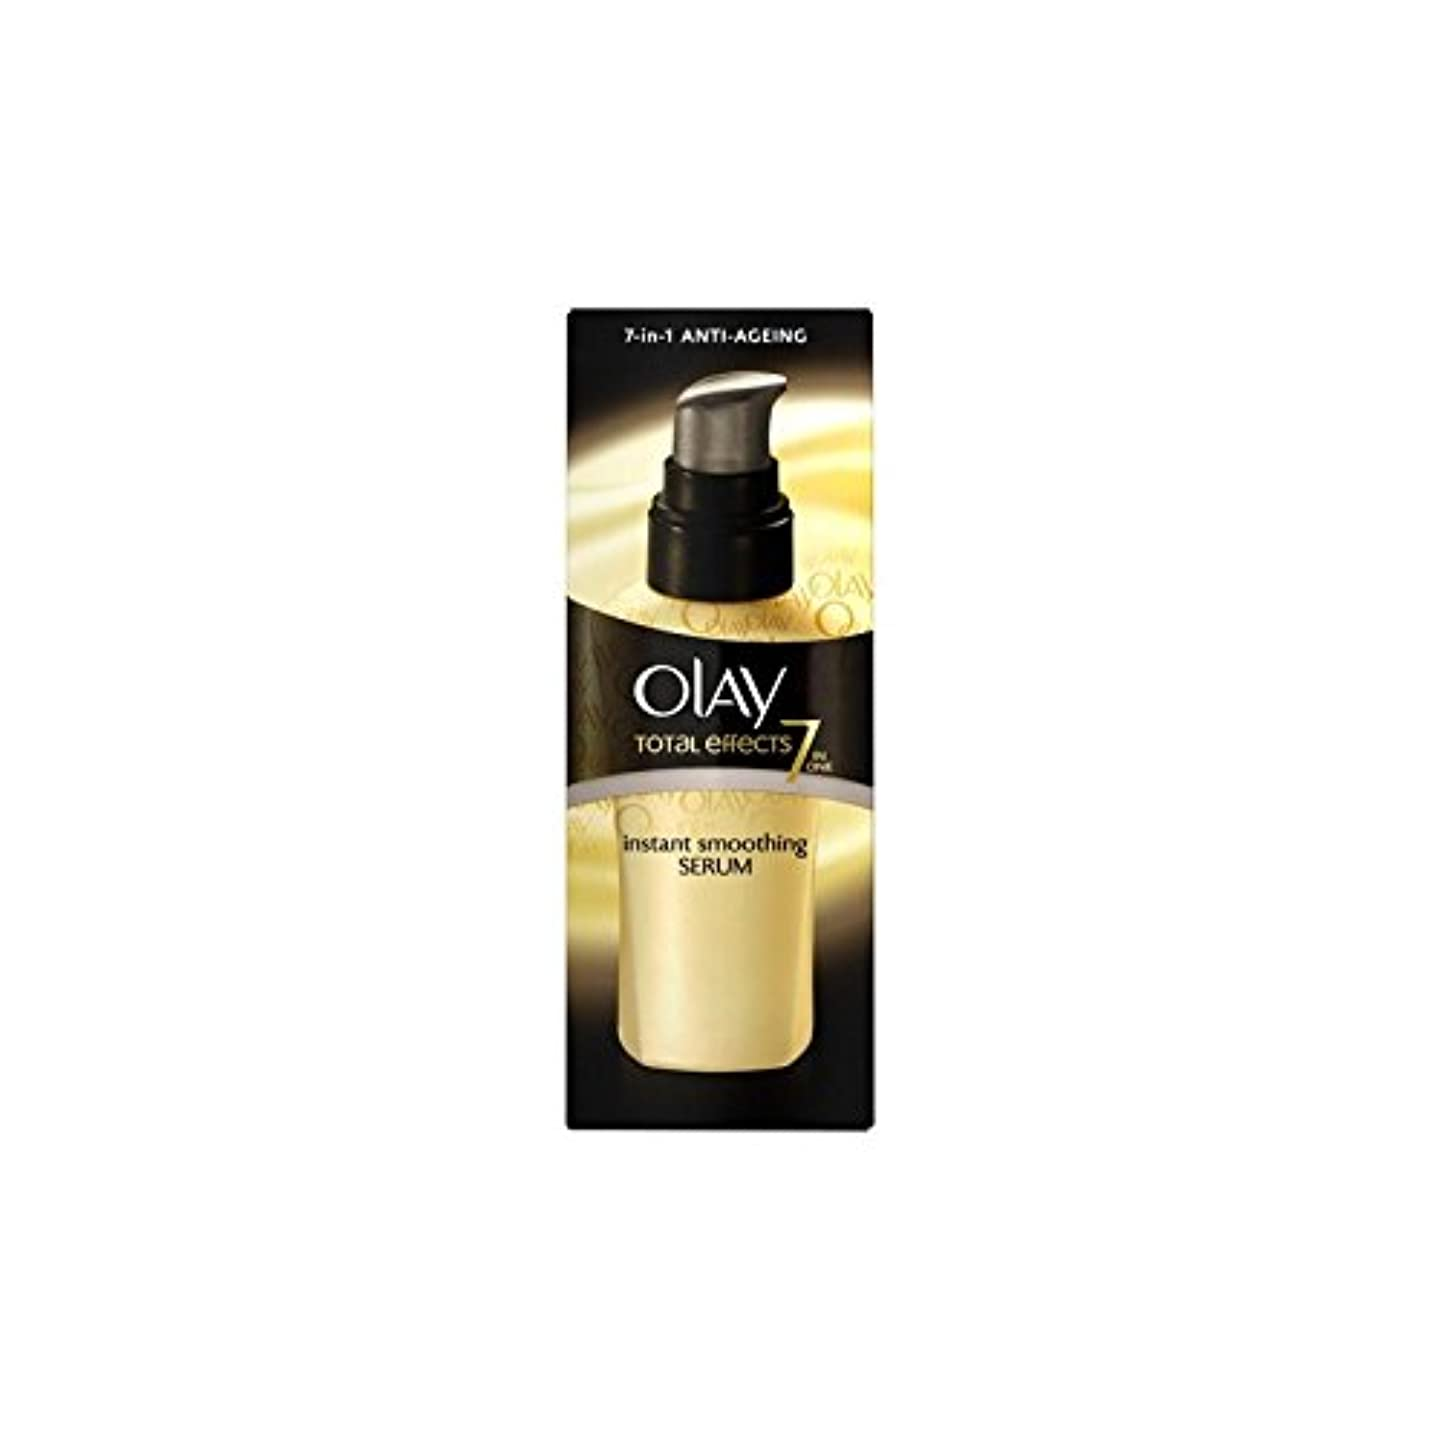 Olay Total Effects Instant Smoothing Serum (50ml) - オーレイトータルエフェクトインスタント平滑化血清(50ミリリットル) [並行輸入品]